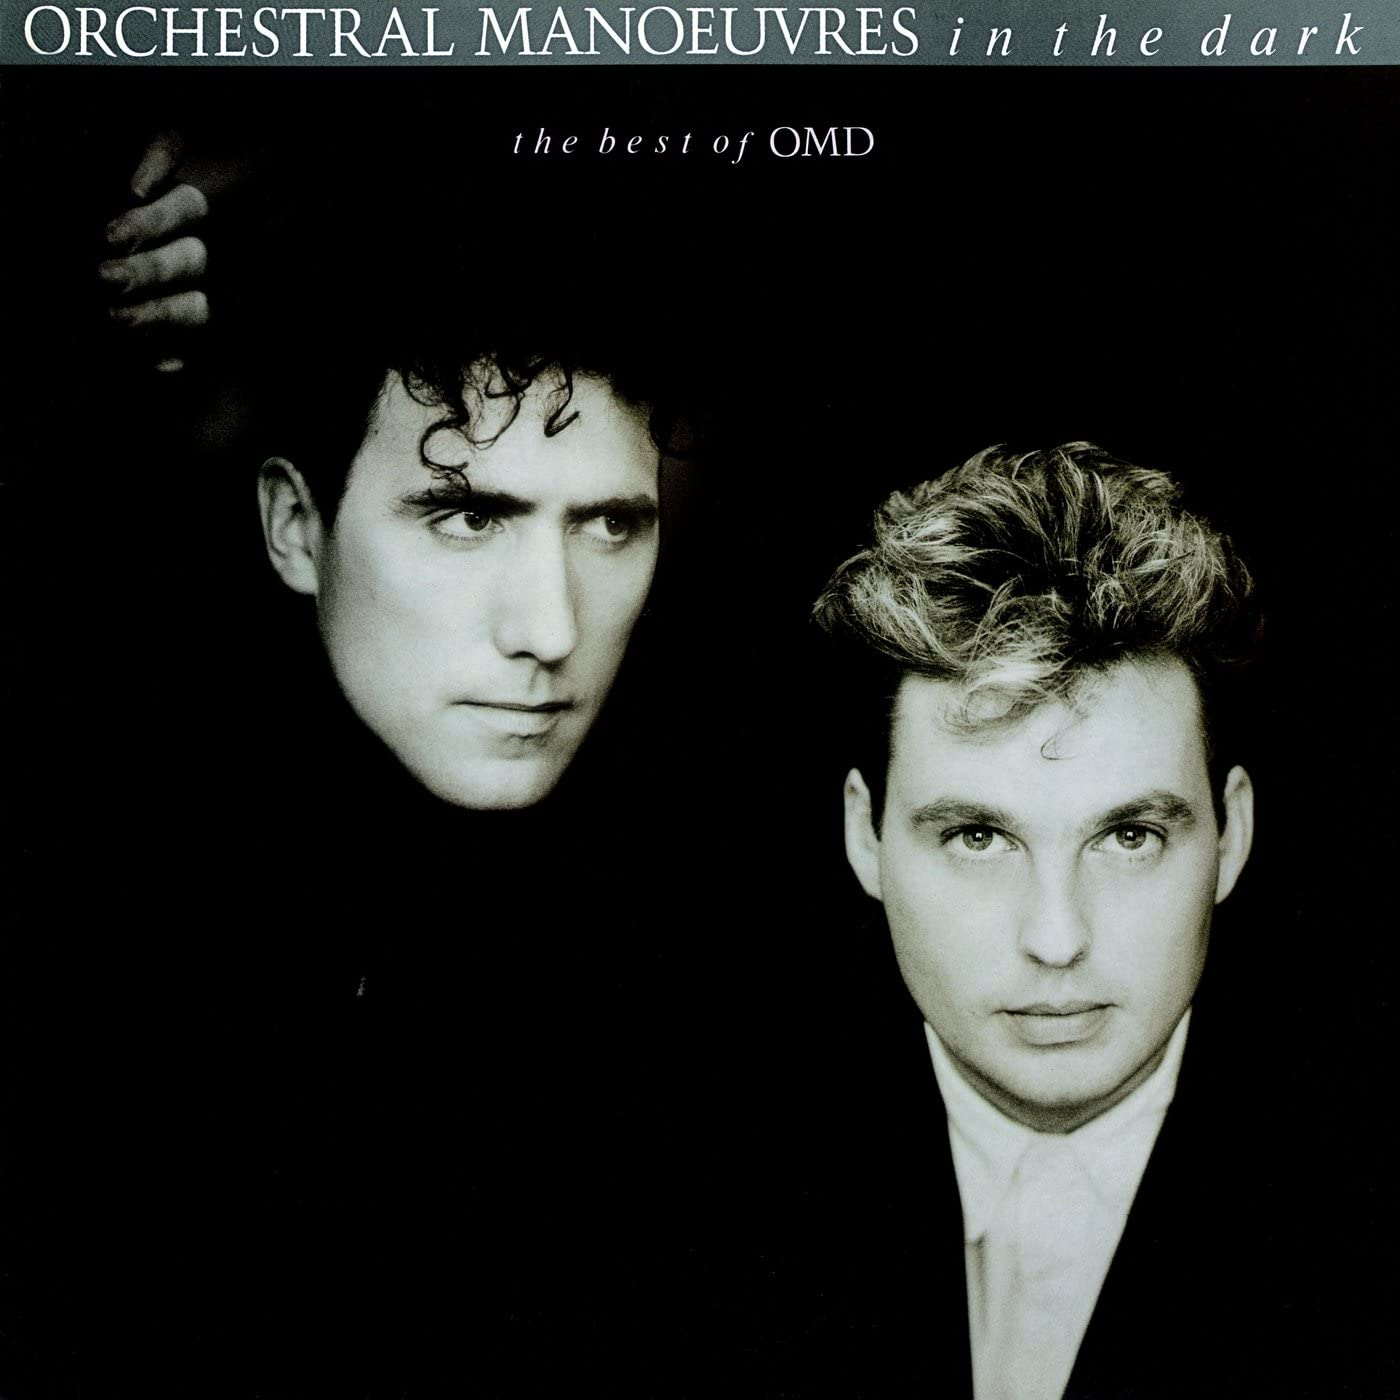 The Best of OMD: Amazon.co.uk: Music